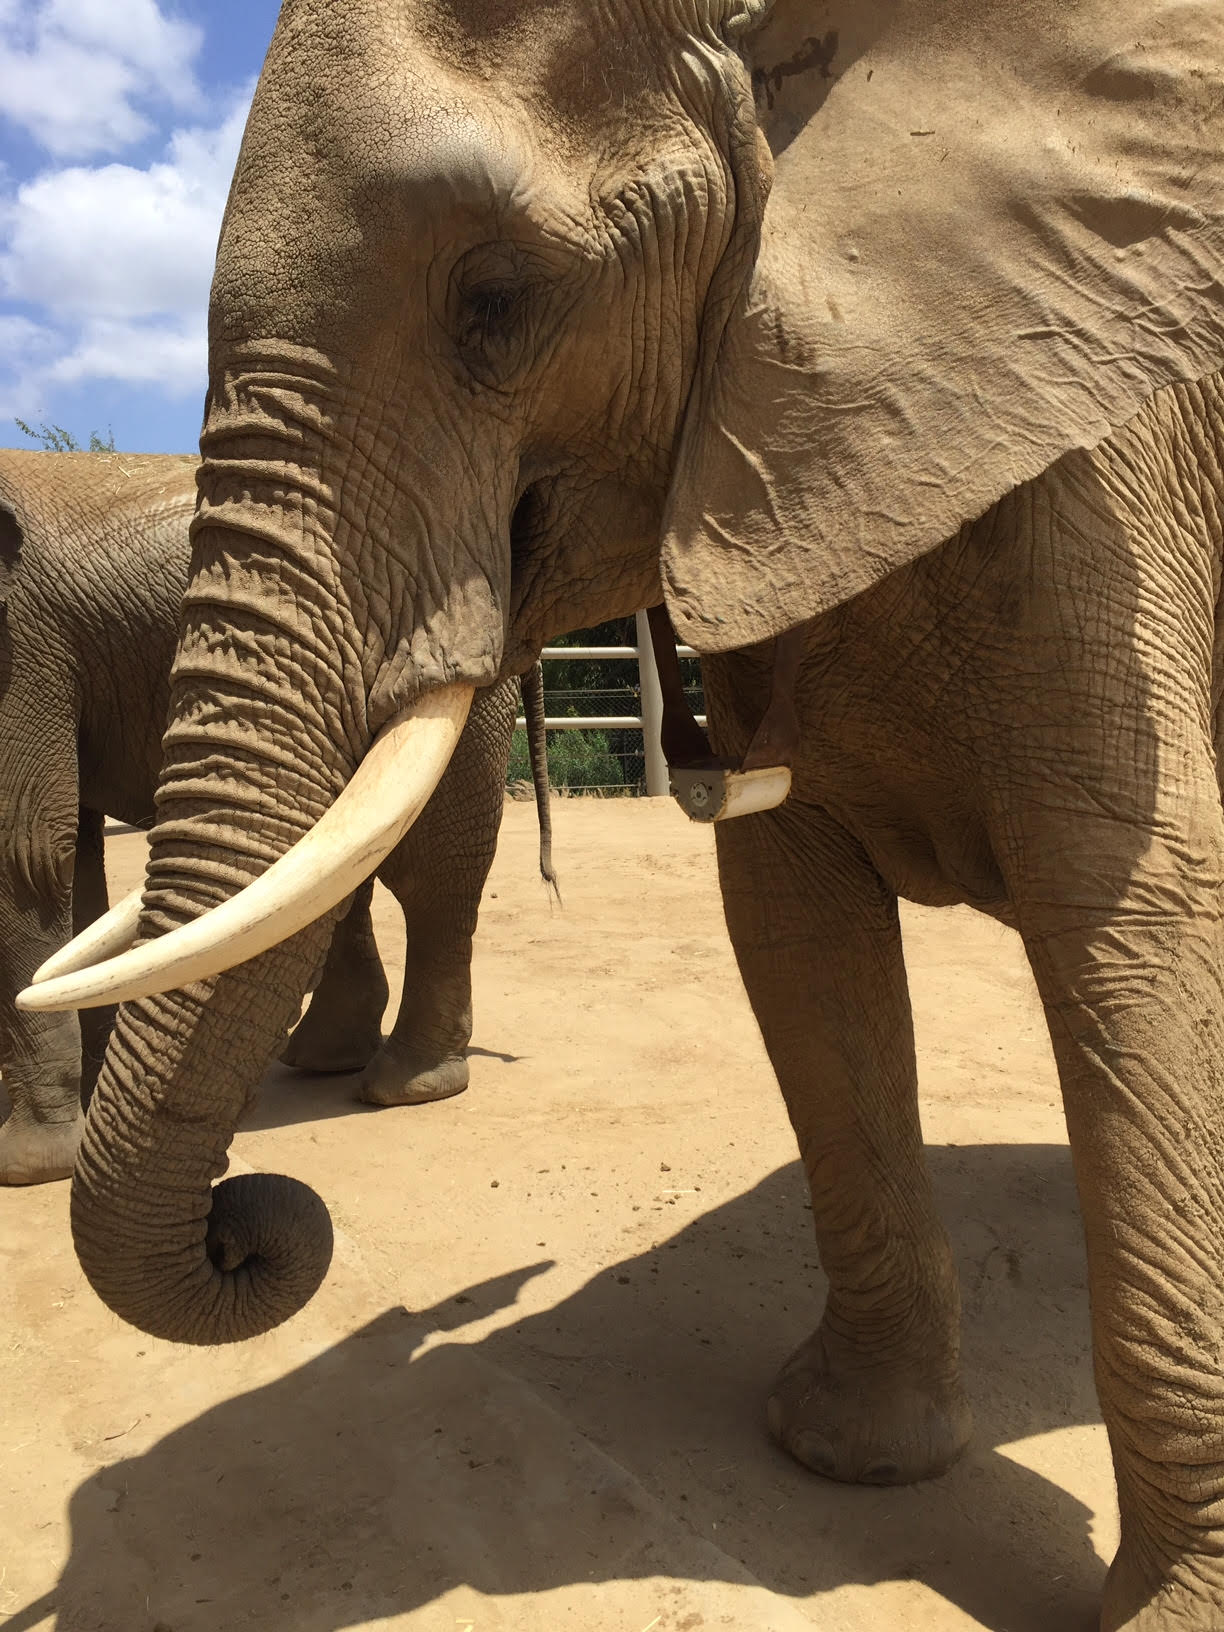 An elephant wearing the first-phase WIPER sensor on a tracking collar at the San Diego Zoo and Wildlife Park.